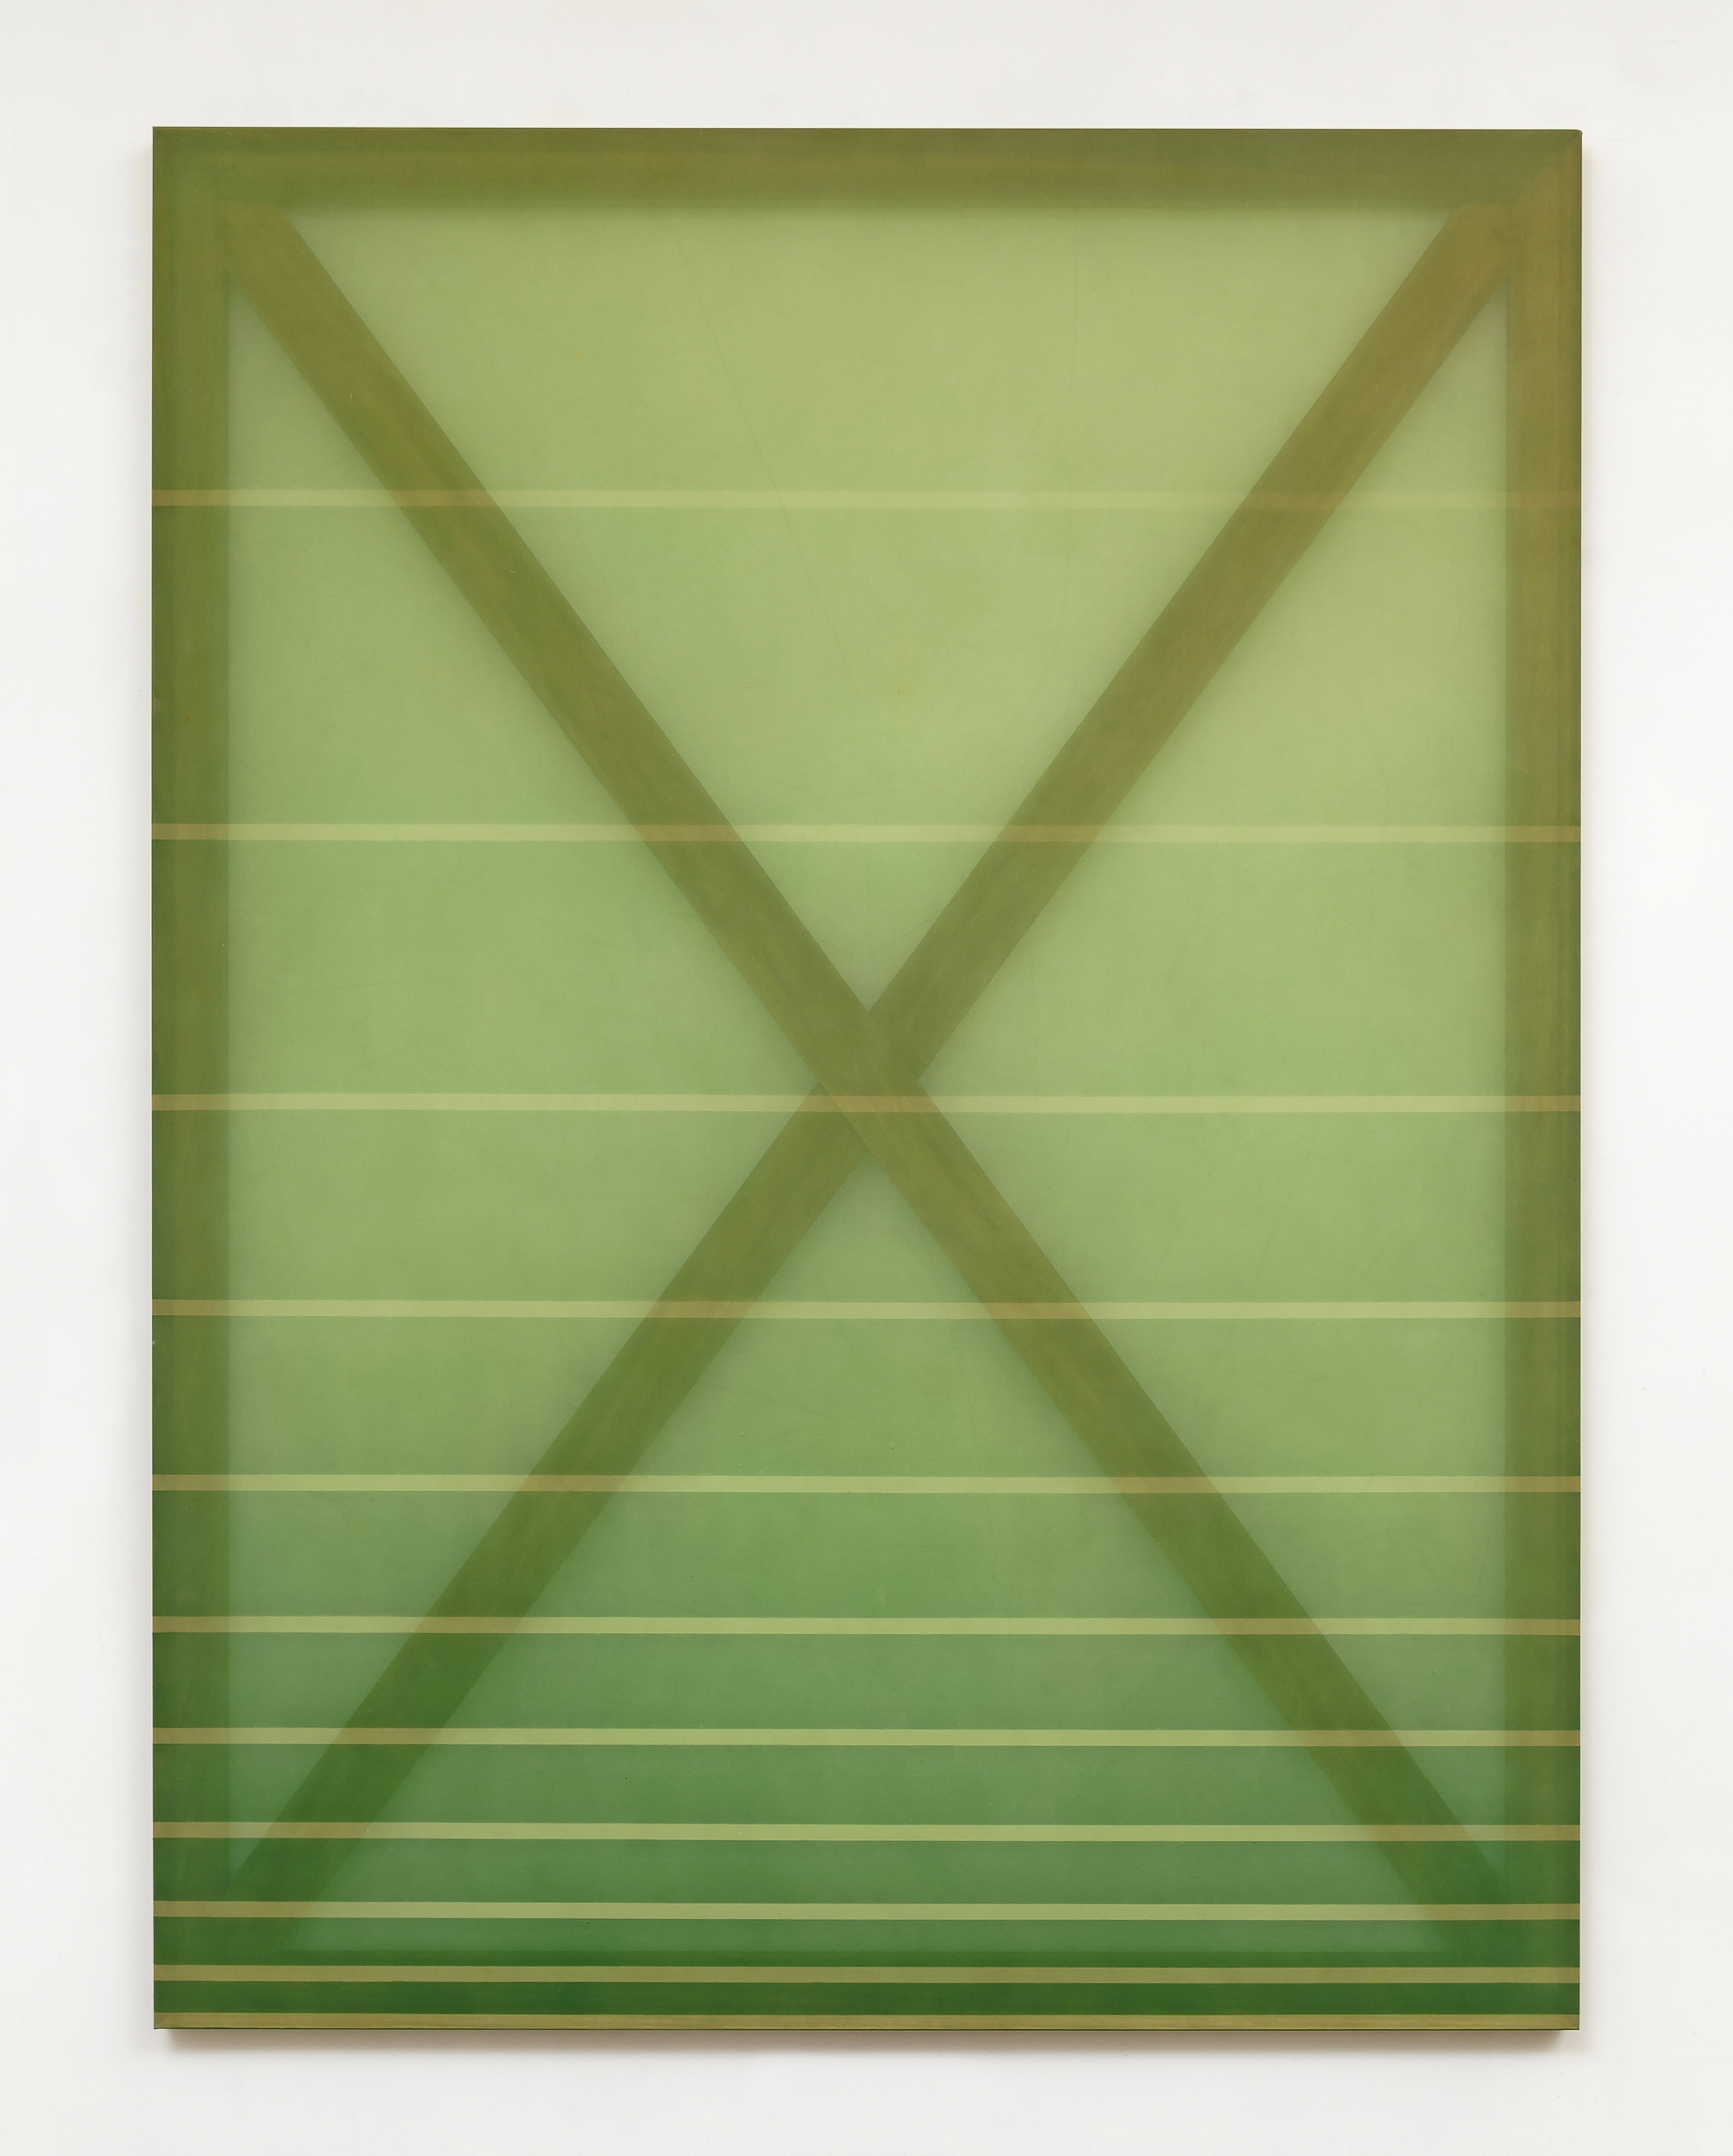 Rebecca Ward, X (green and yellow), 2015, oil and dye on silk, 60 x 45 in